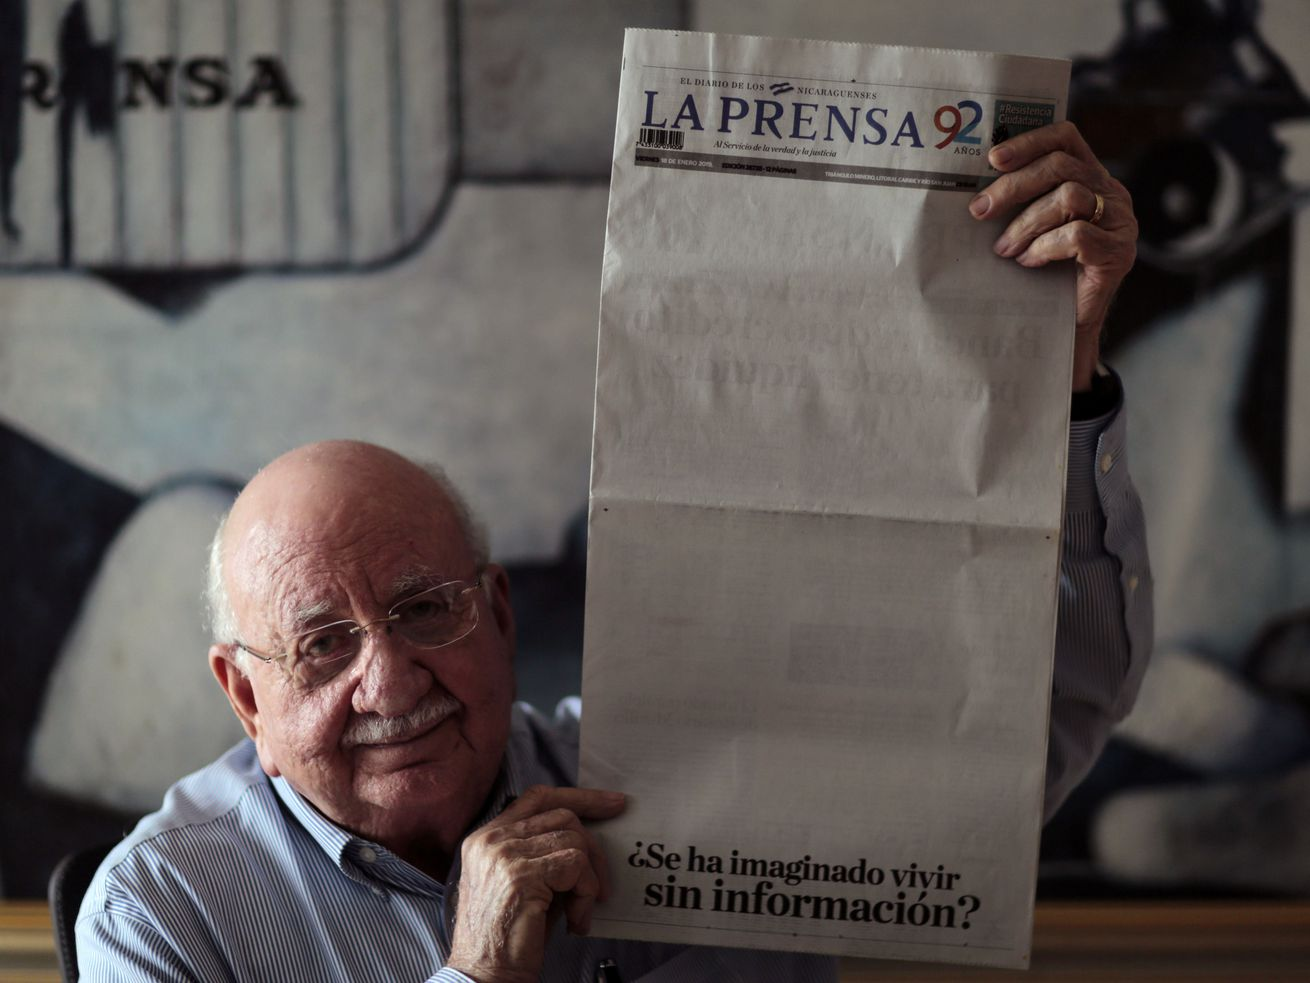 La Prensa director Jaime Chamorro holds the issue with the blank front page.